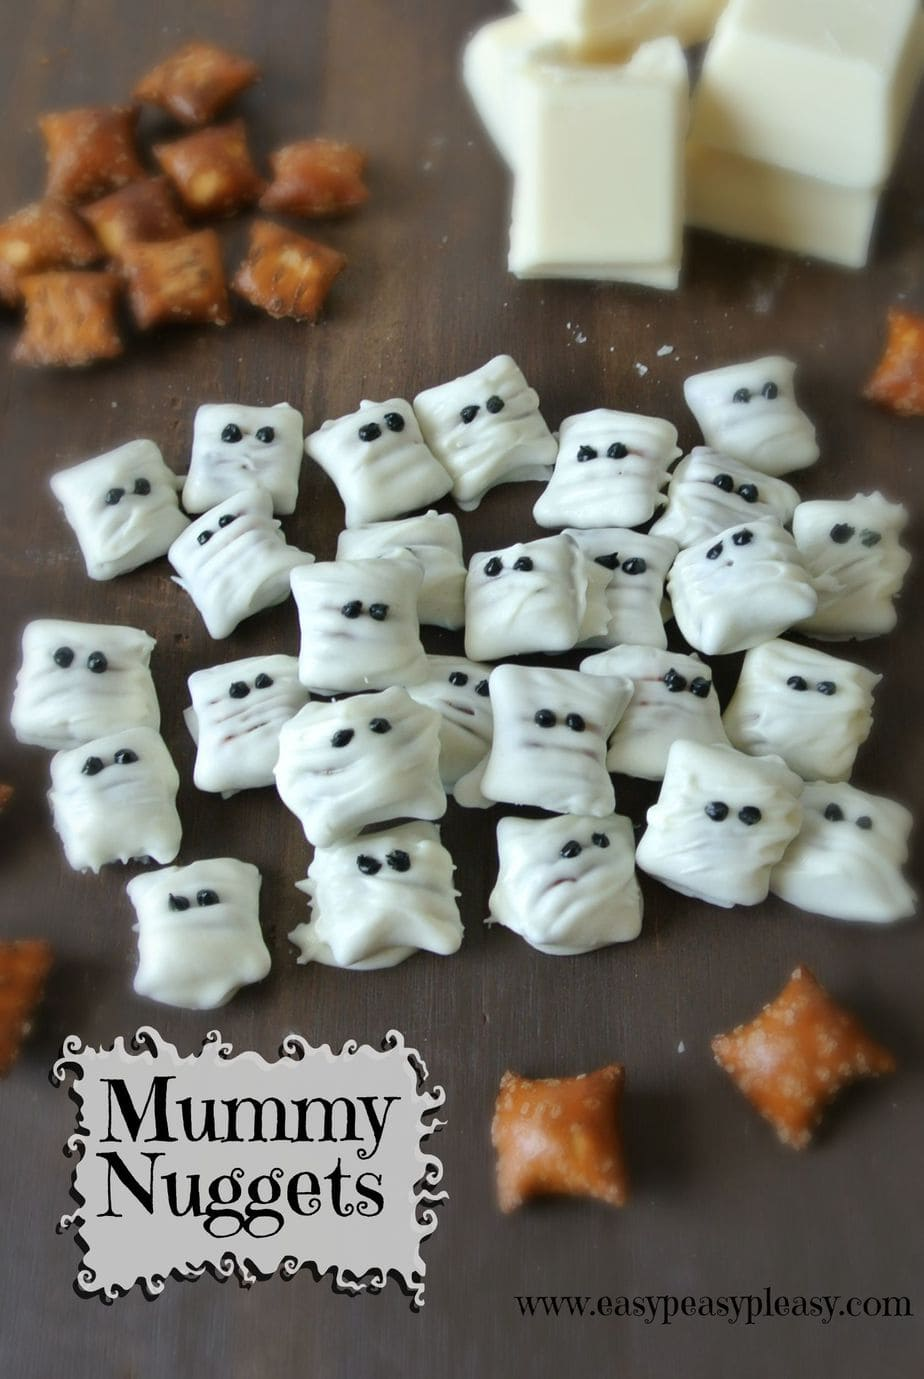 Easy 3 Ingredient Mummy Nuggets are the perfect treat for Halloween!